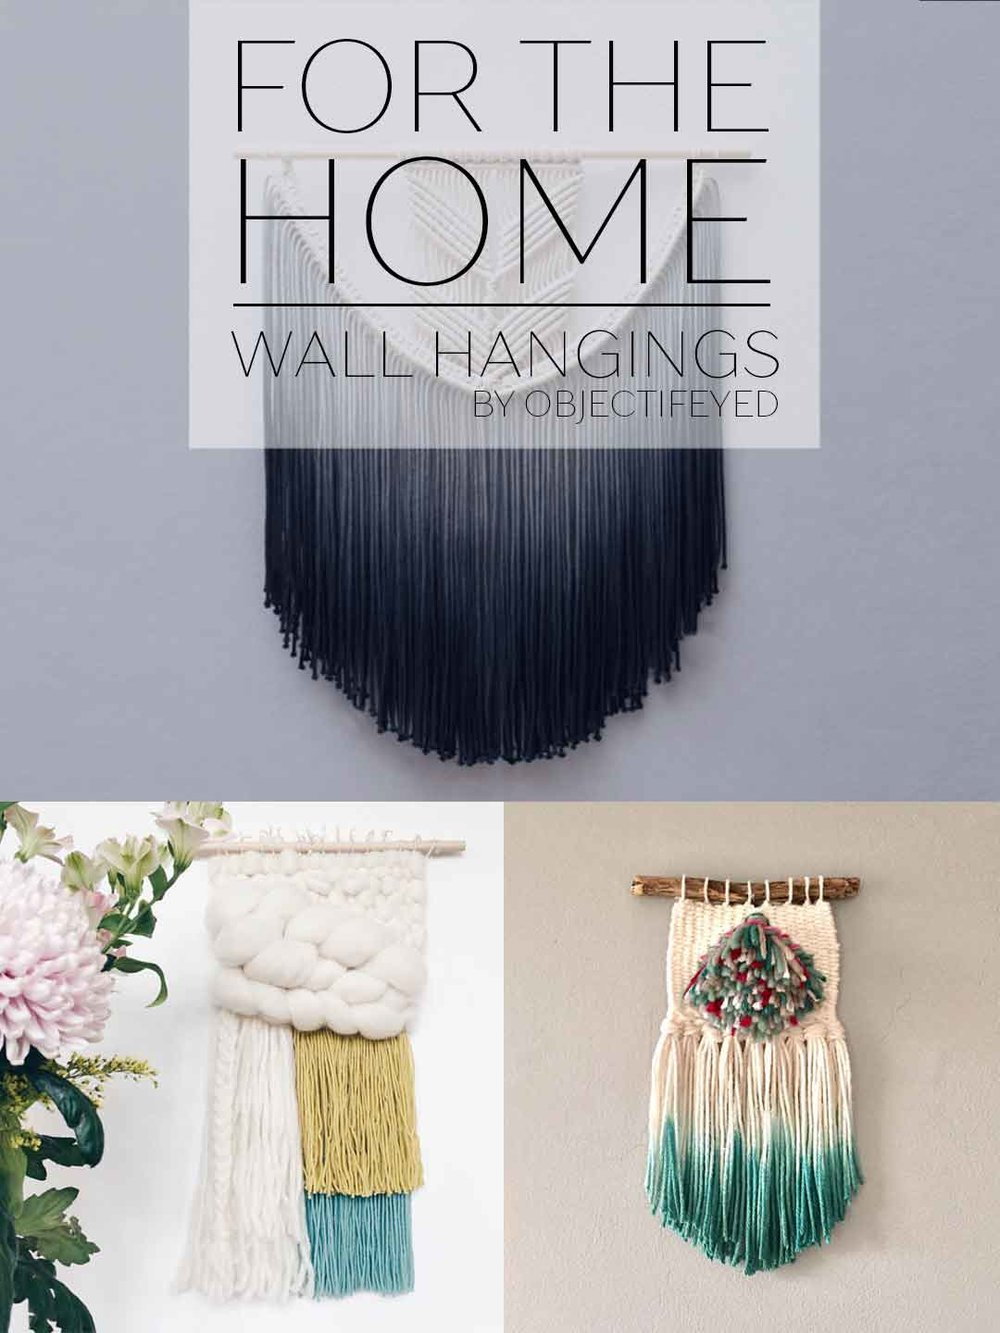 Cool Weavings and Wall Hangings by Objectifeyed